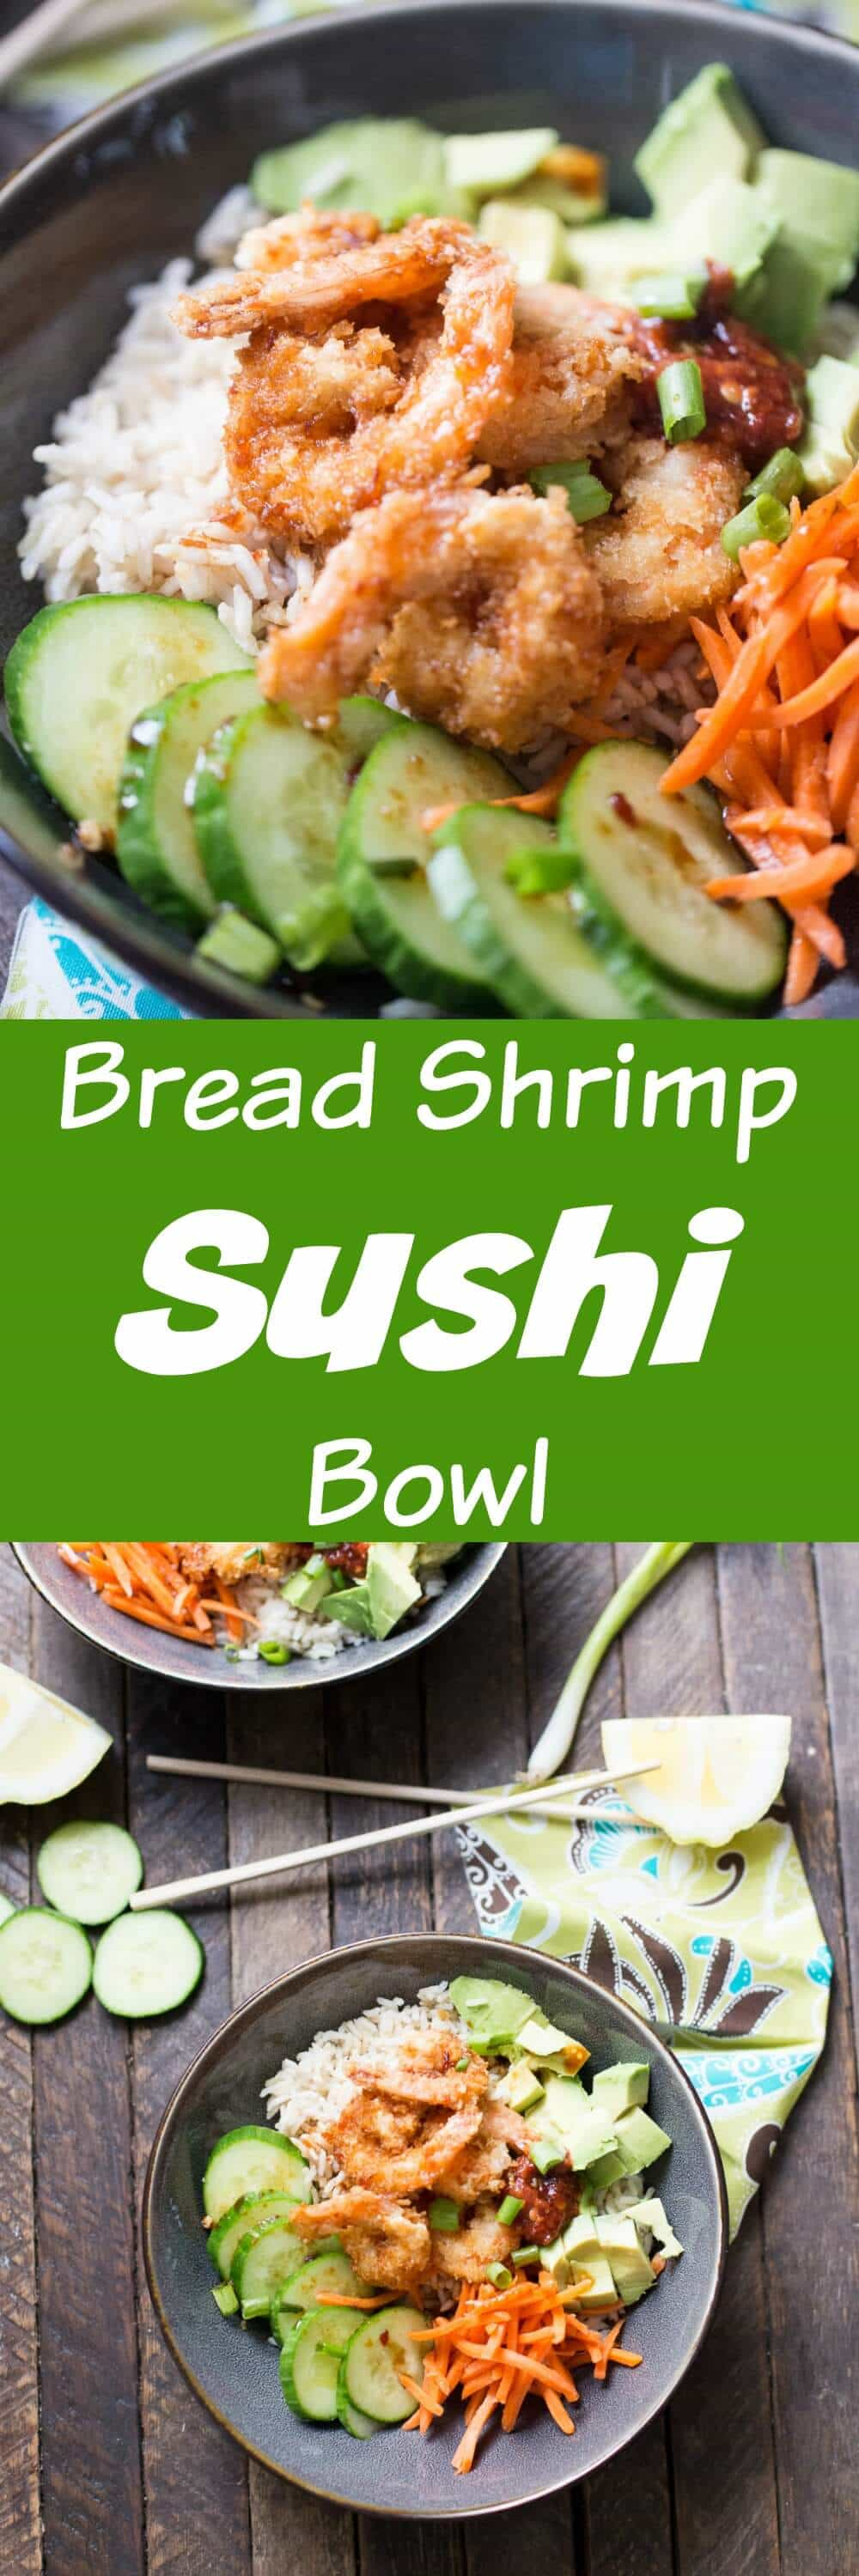 Want sushi but don't want to go out to get it? Cook up some breaded shrimp and make a sushi bowl at home! This bowl has the flavors of sushi, but it easy, filling and you can make it at home!